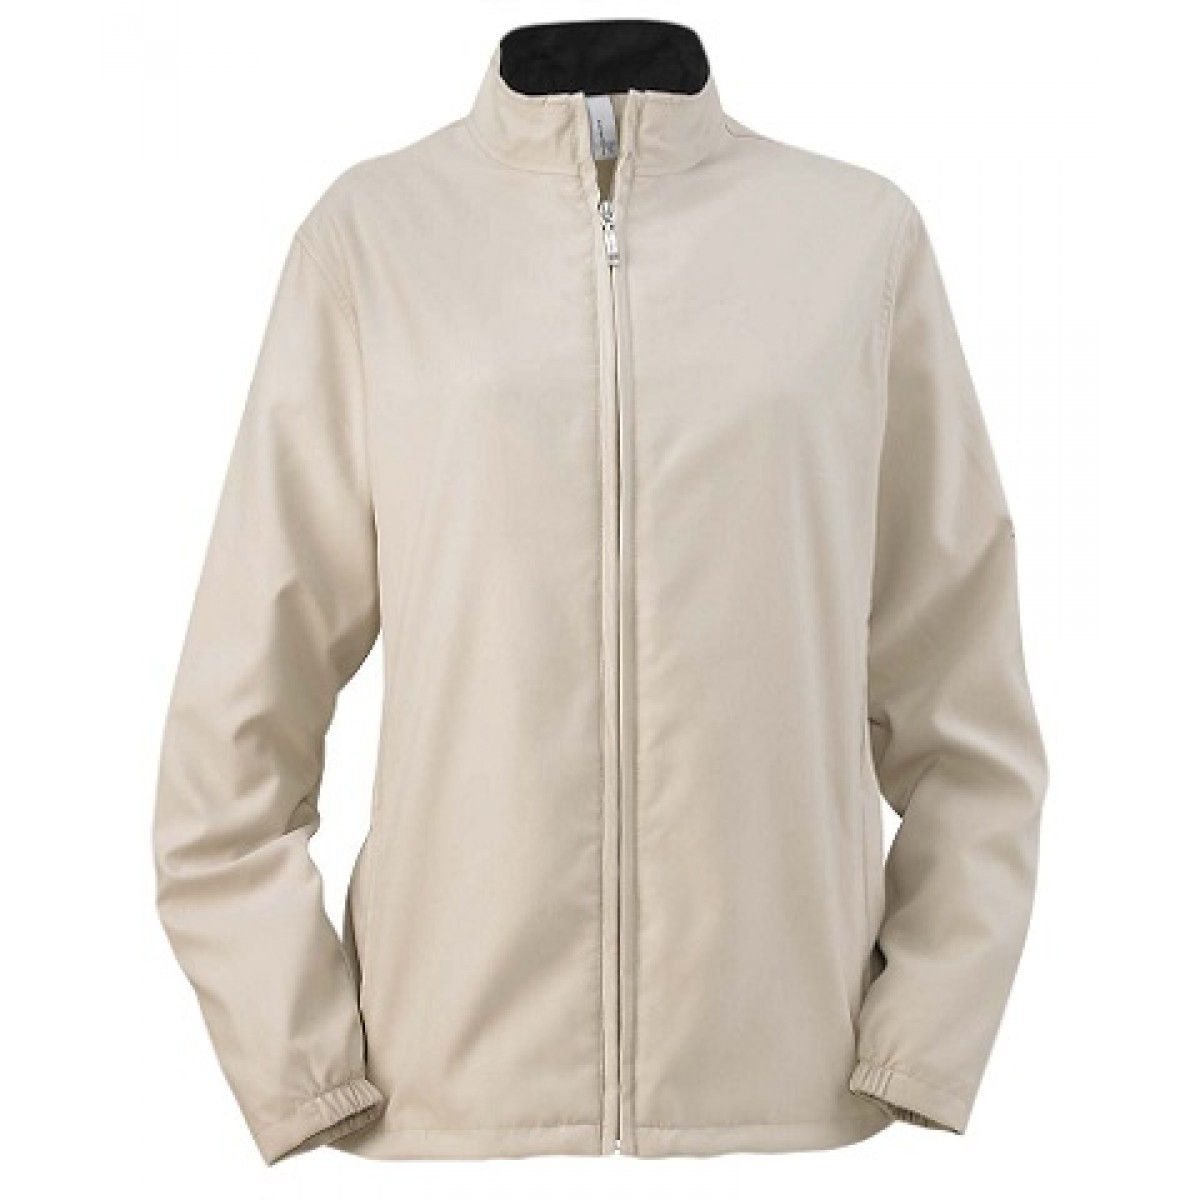 Ladies' Full-Zip Lined Wind Jacket-L